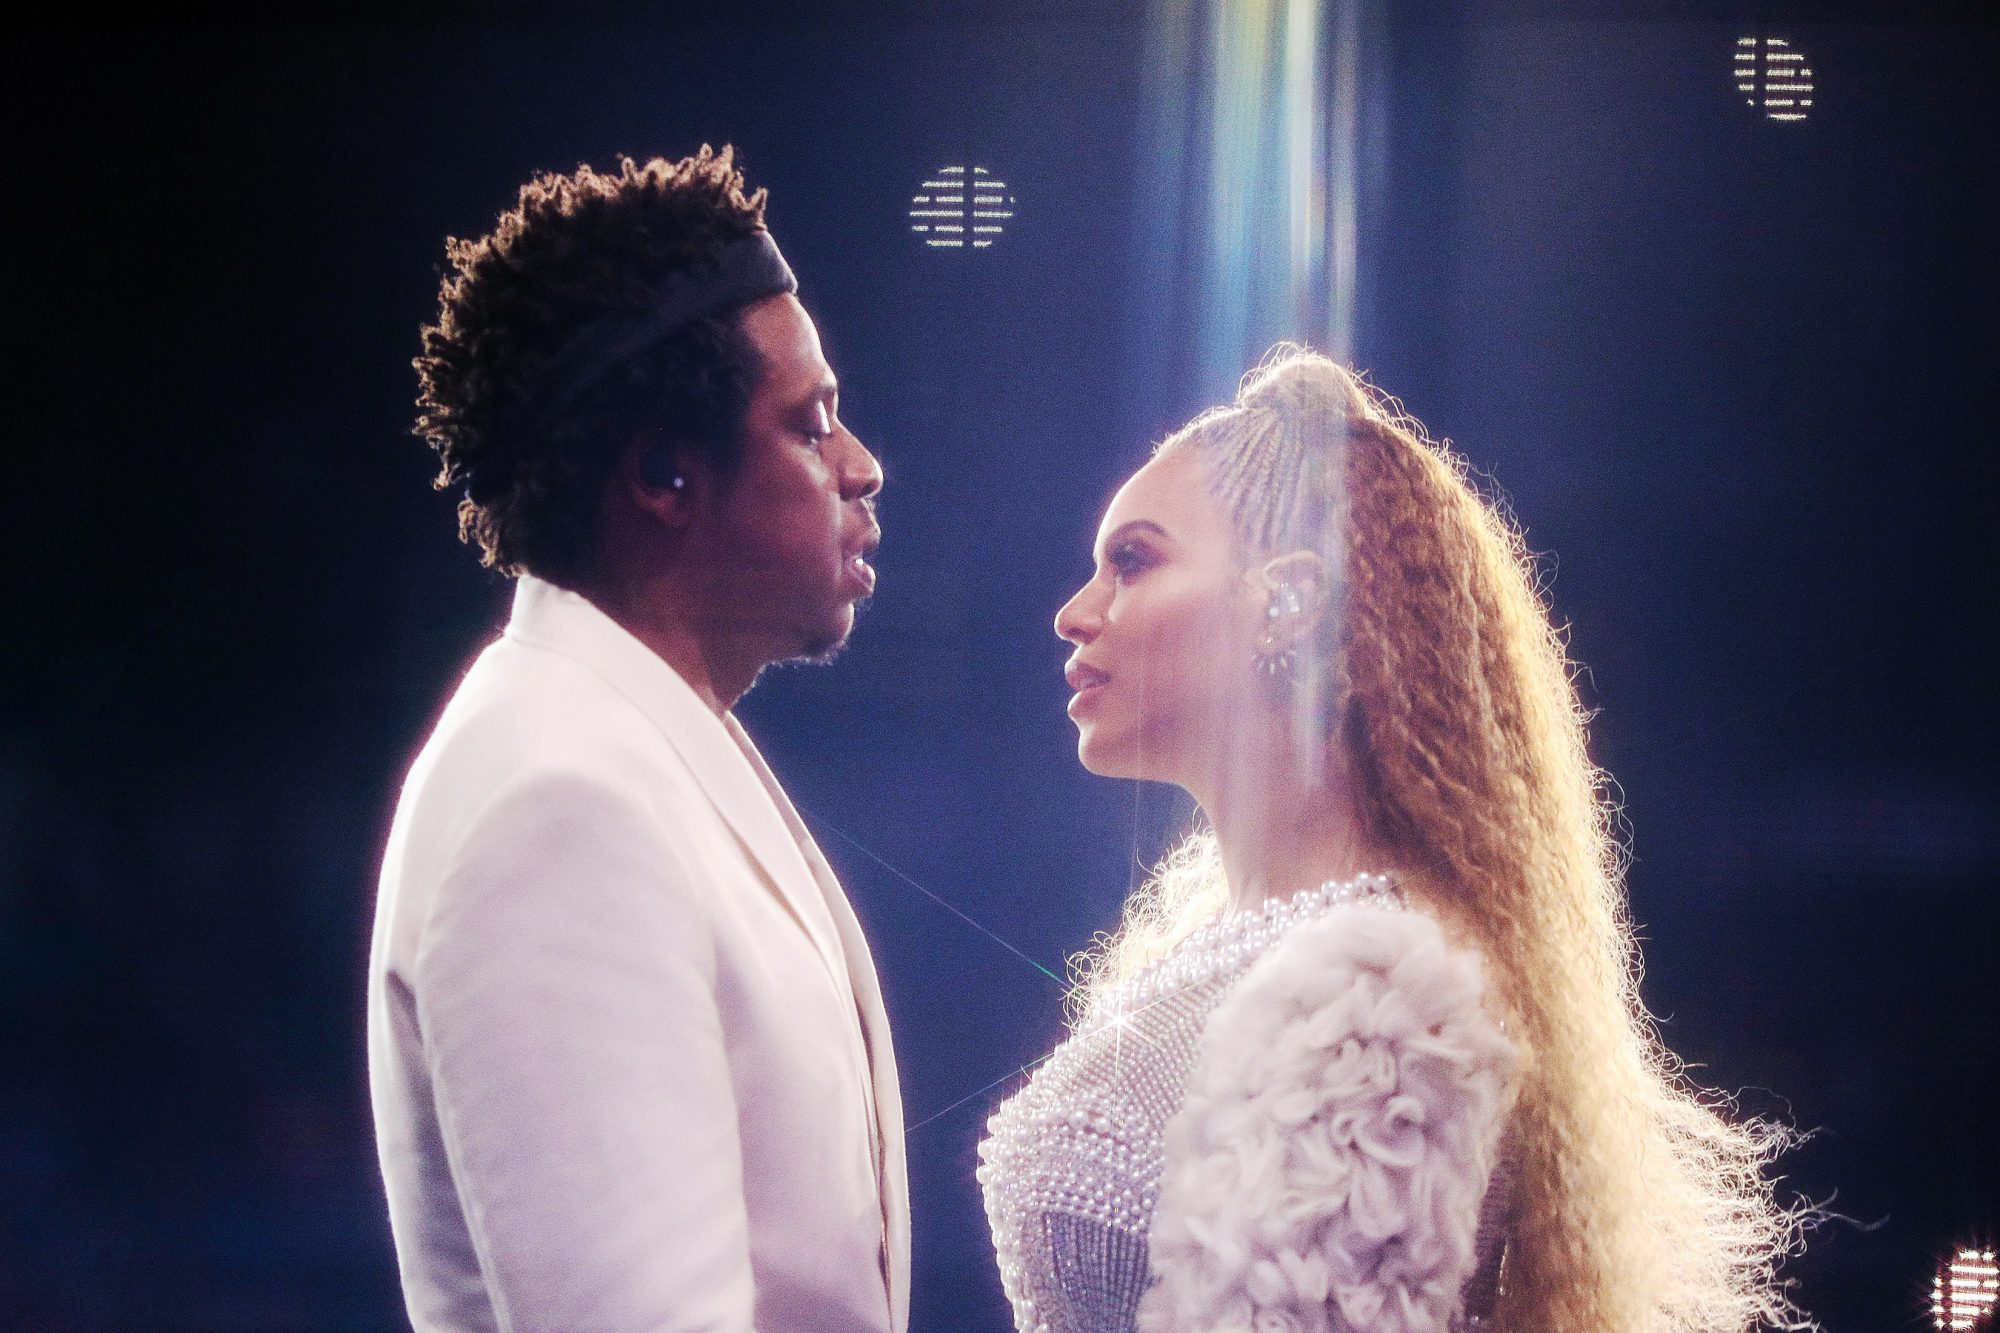 Beyonce and Jay-Z in concert, 'On The Run II Tour', Minneapolis, USA - 08 Aug 2018